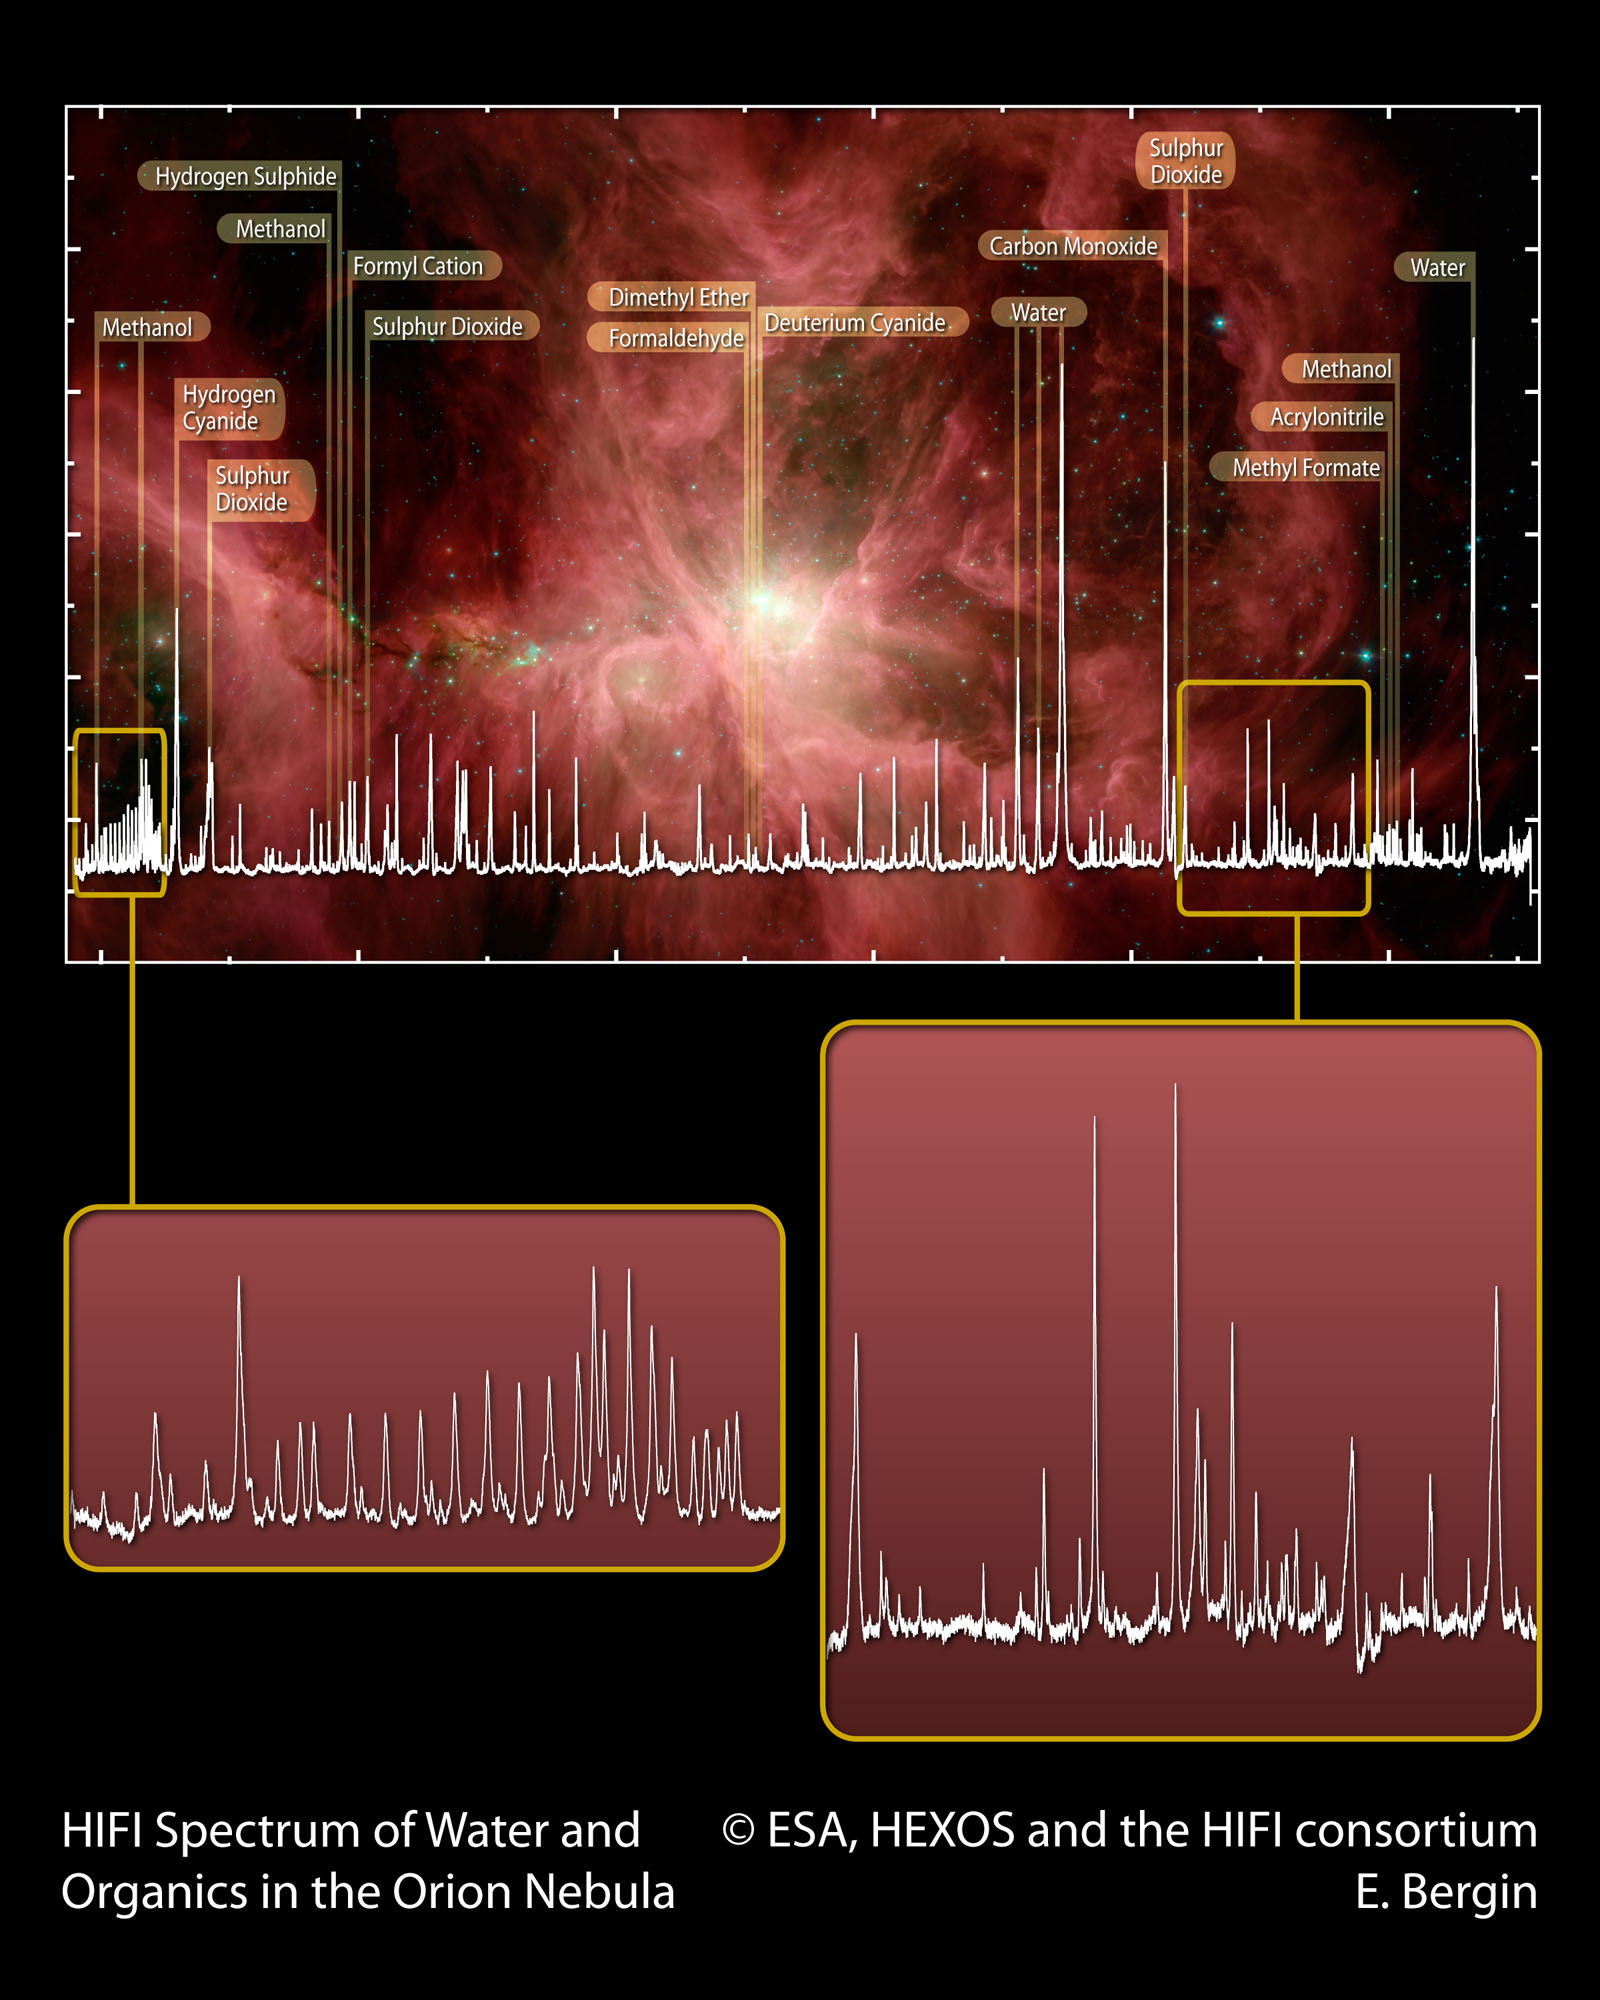 HIFI spectral scan of Orion (blowouts)